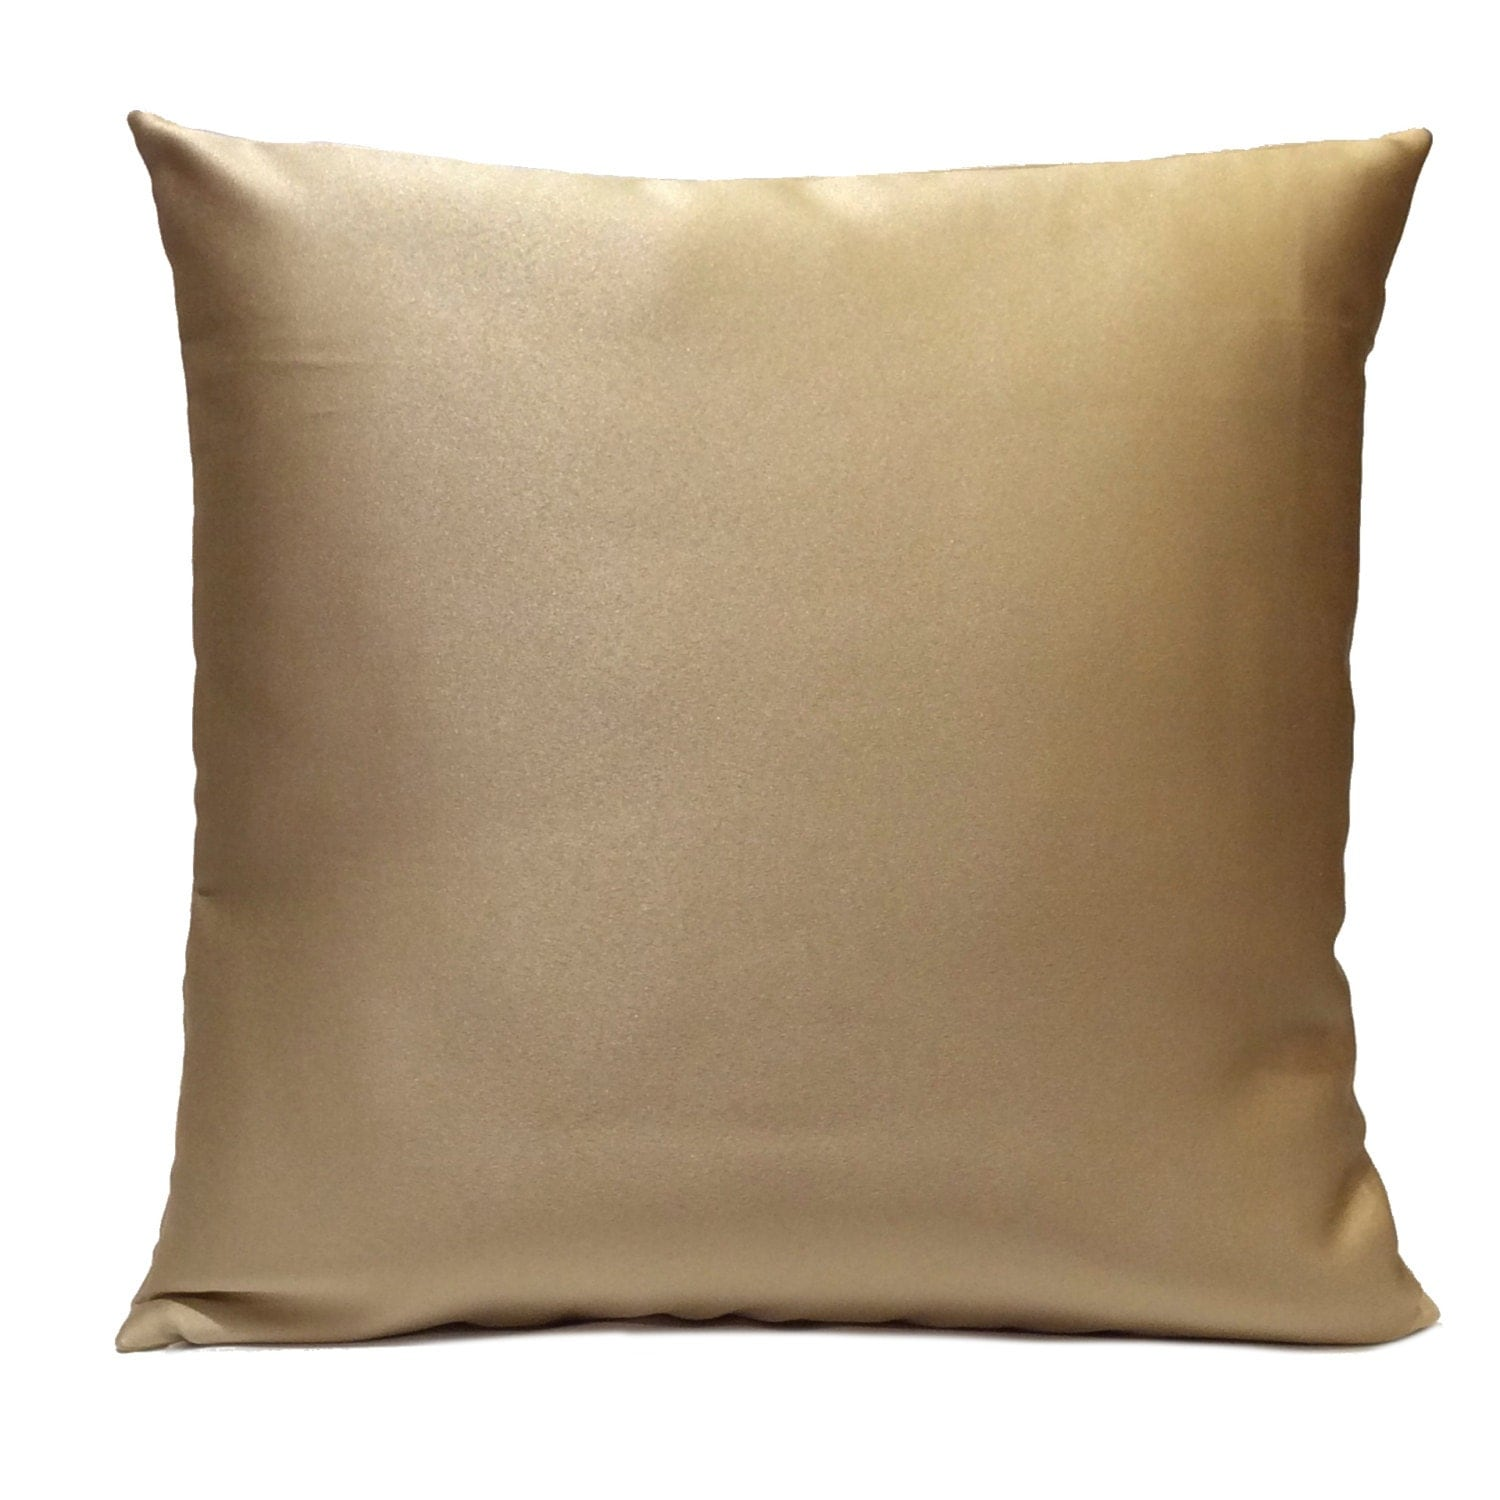 Throw Pillows Tan : Light Goldish Tan Pillow Throw Pillow Cover Decorative